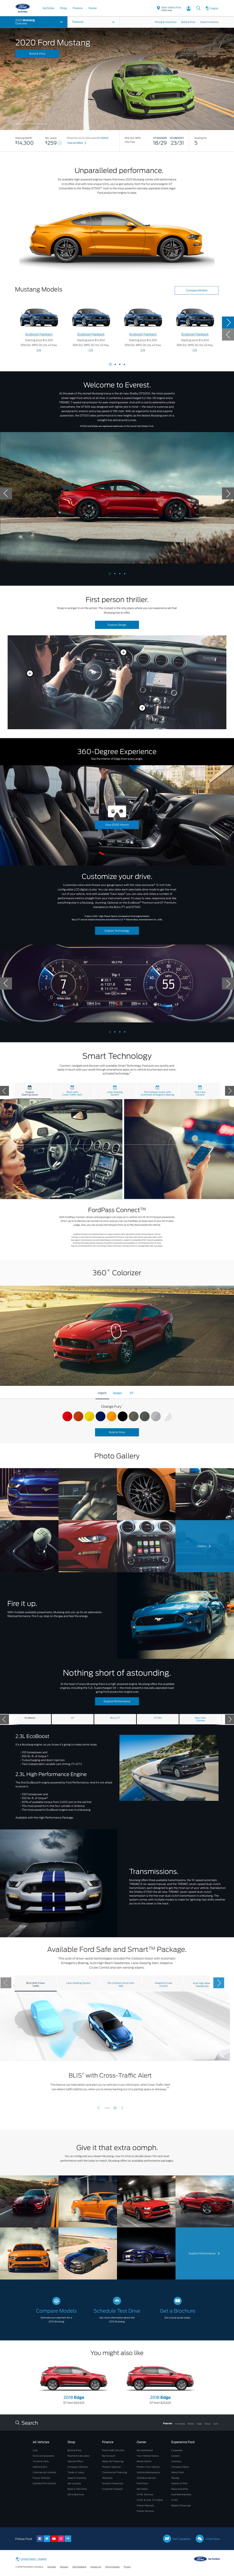 Ford.com (Mustang)